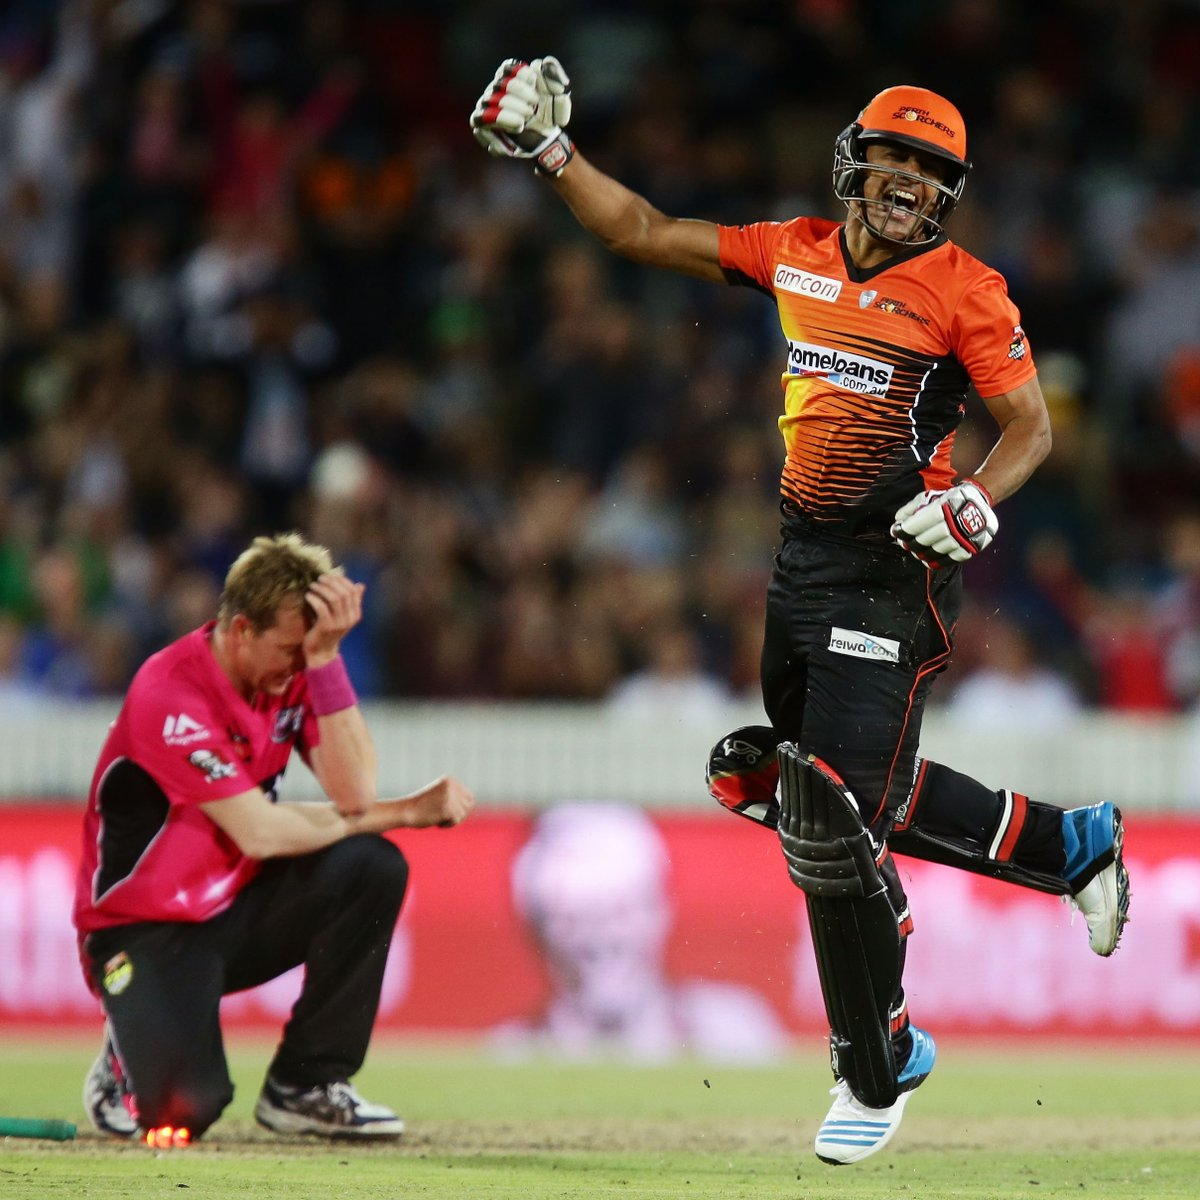 Its five years to the day since the wild finish in the @BBL|04 final. @BrettLee_58s last over of Big Bash cricket!